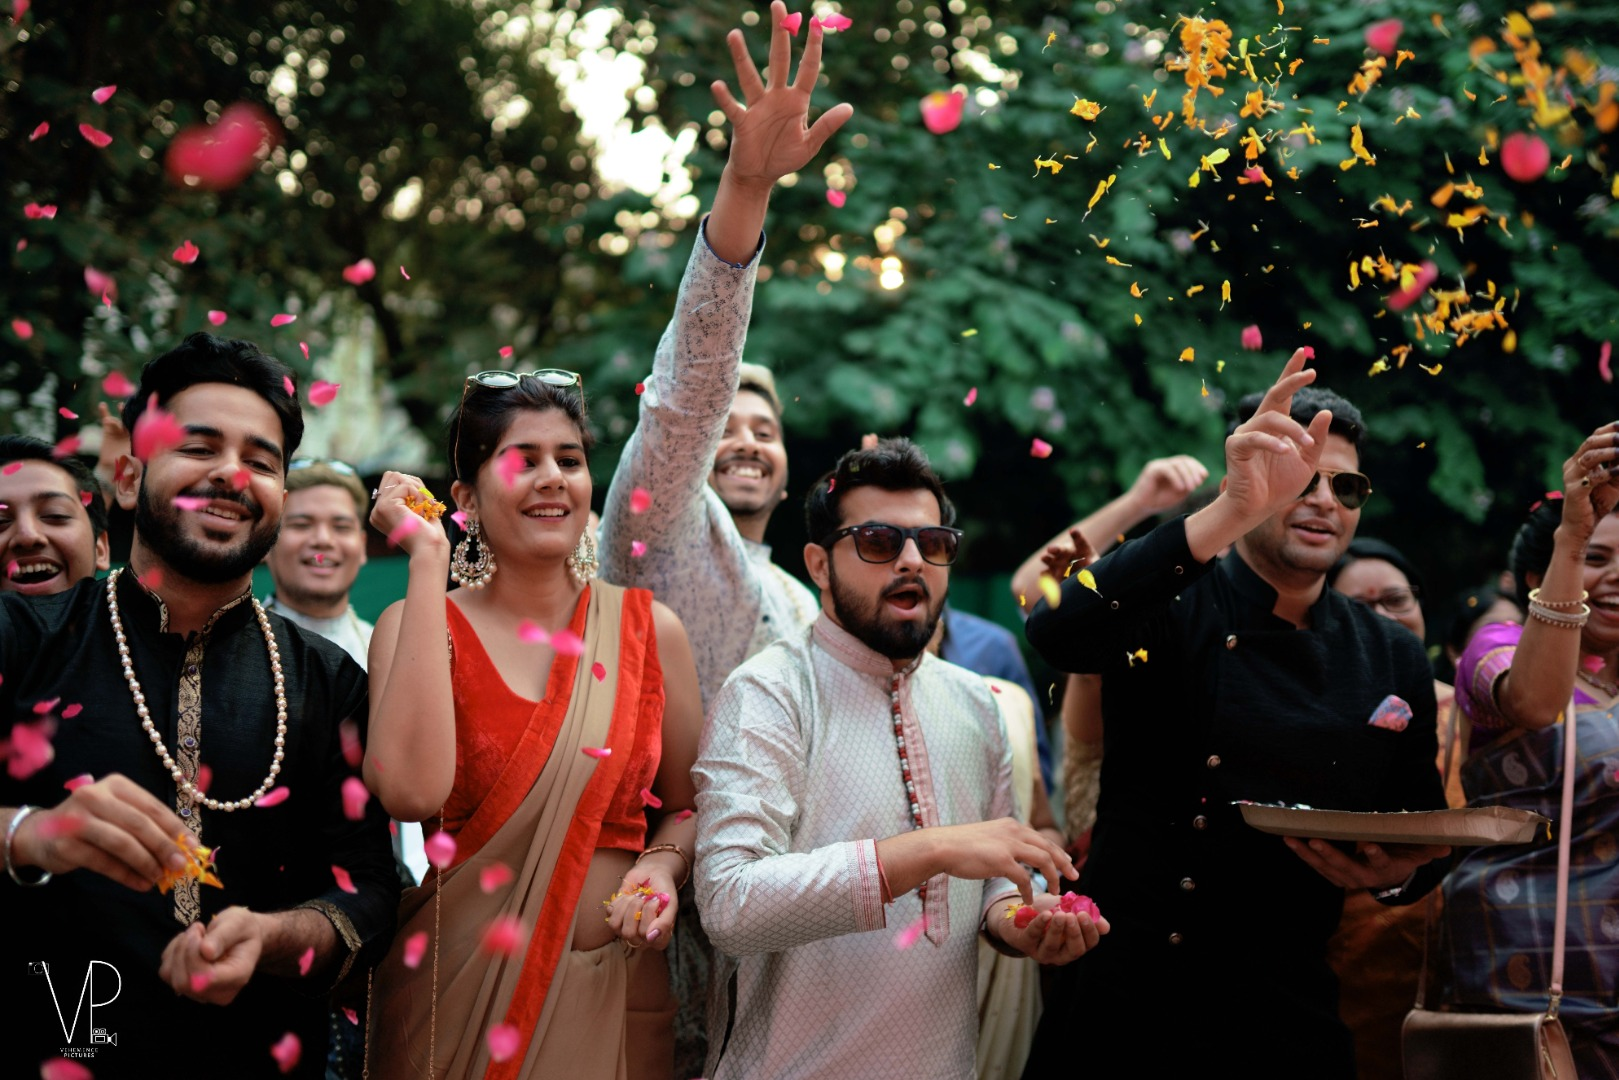 Friends Throwing Flower Petals on the Newly Weds